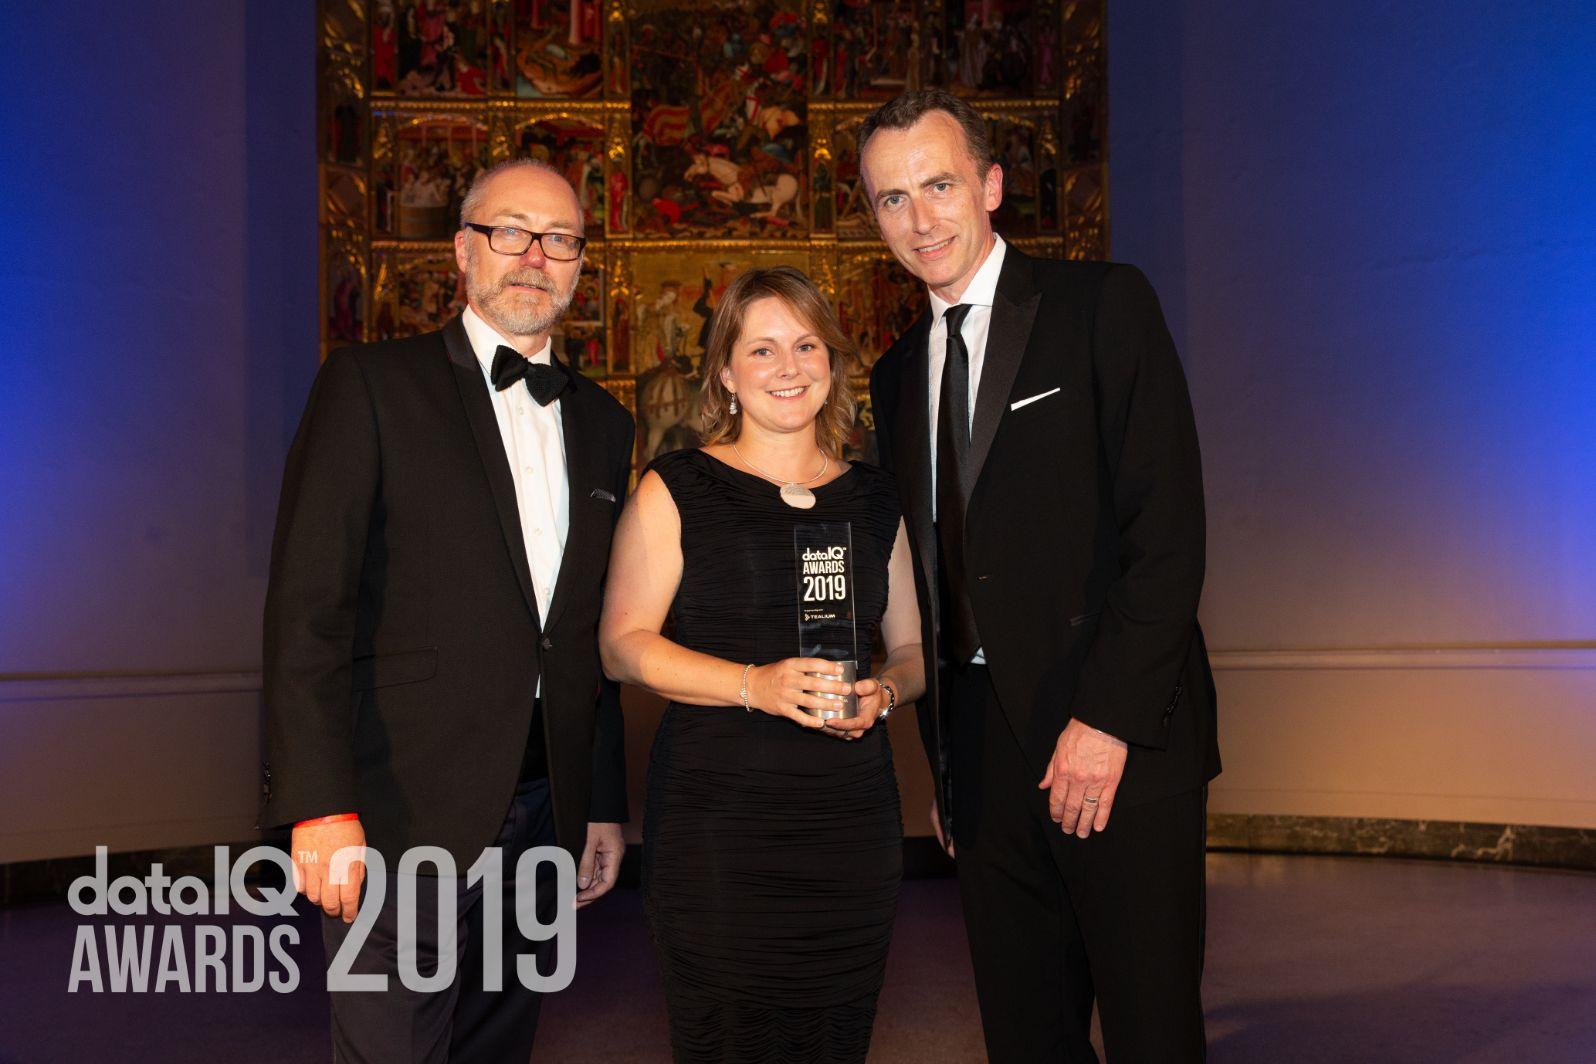 Awards 2019 Image 127